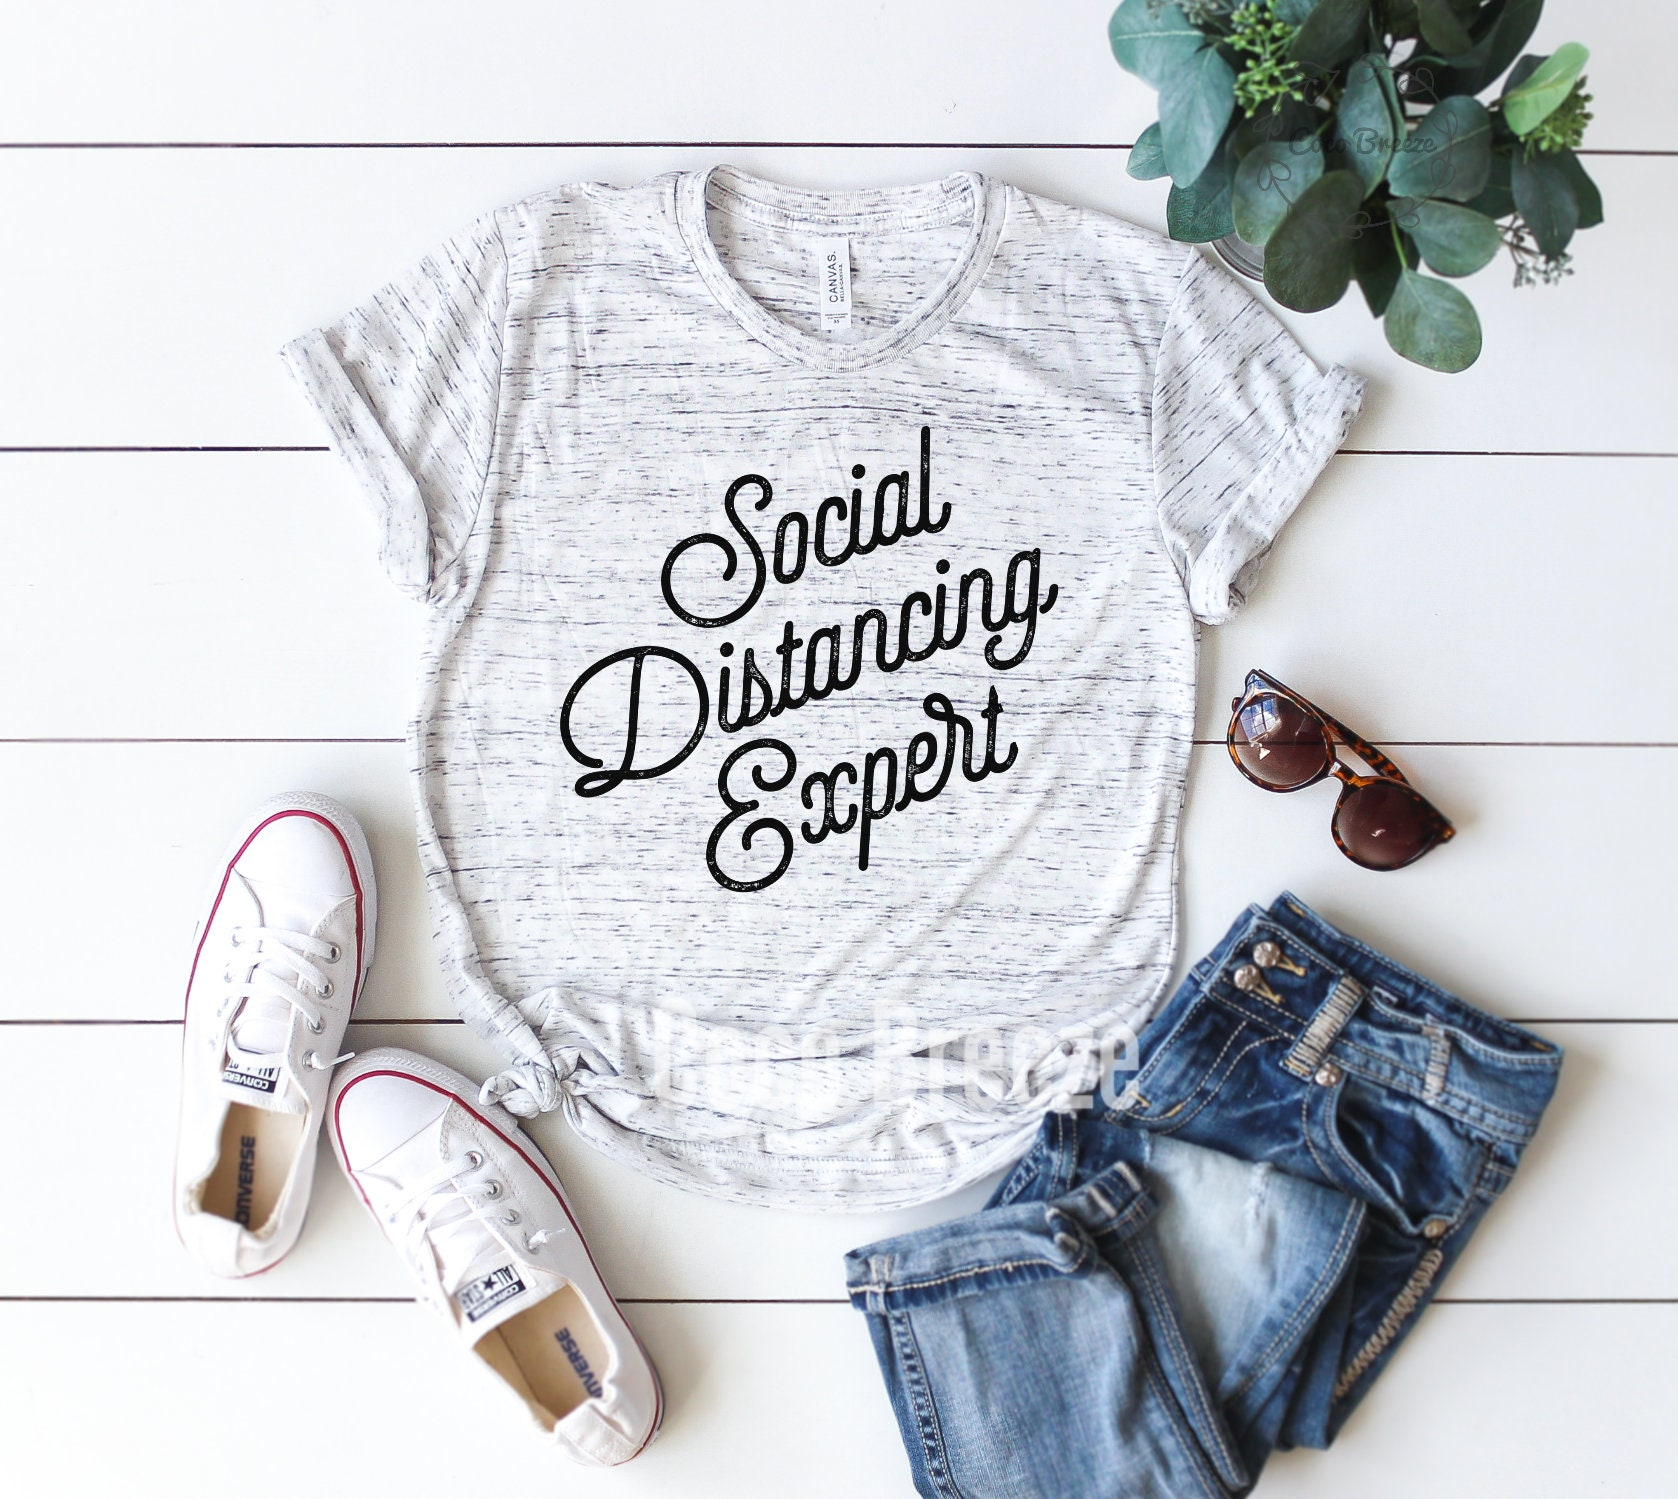 Best quarantined mom shirts from etsy - Social Distancing Expert T-shirt